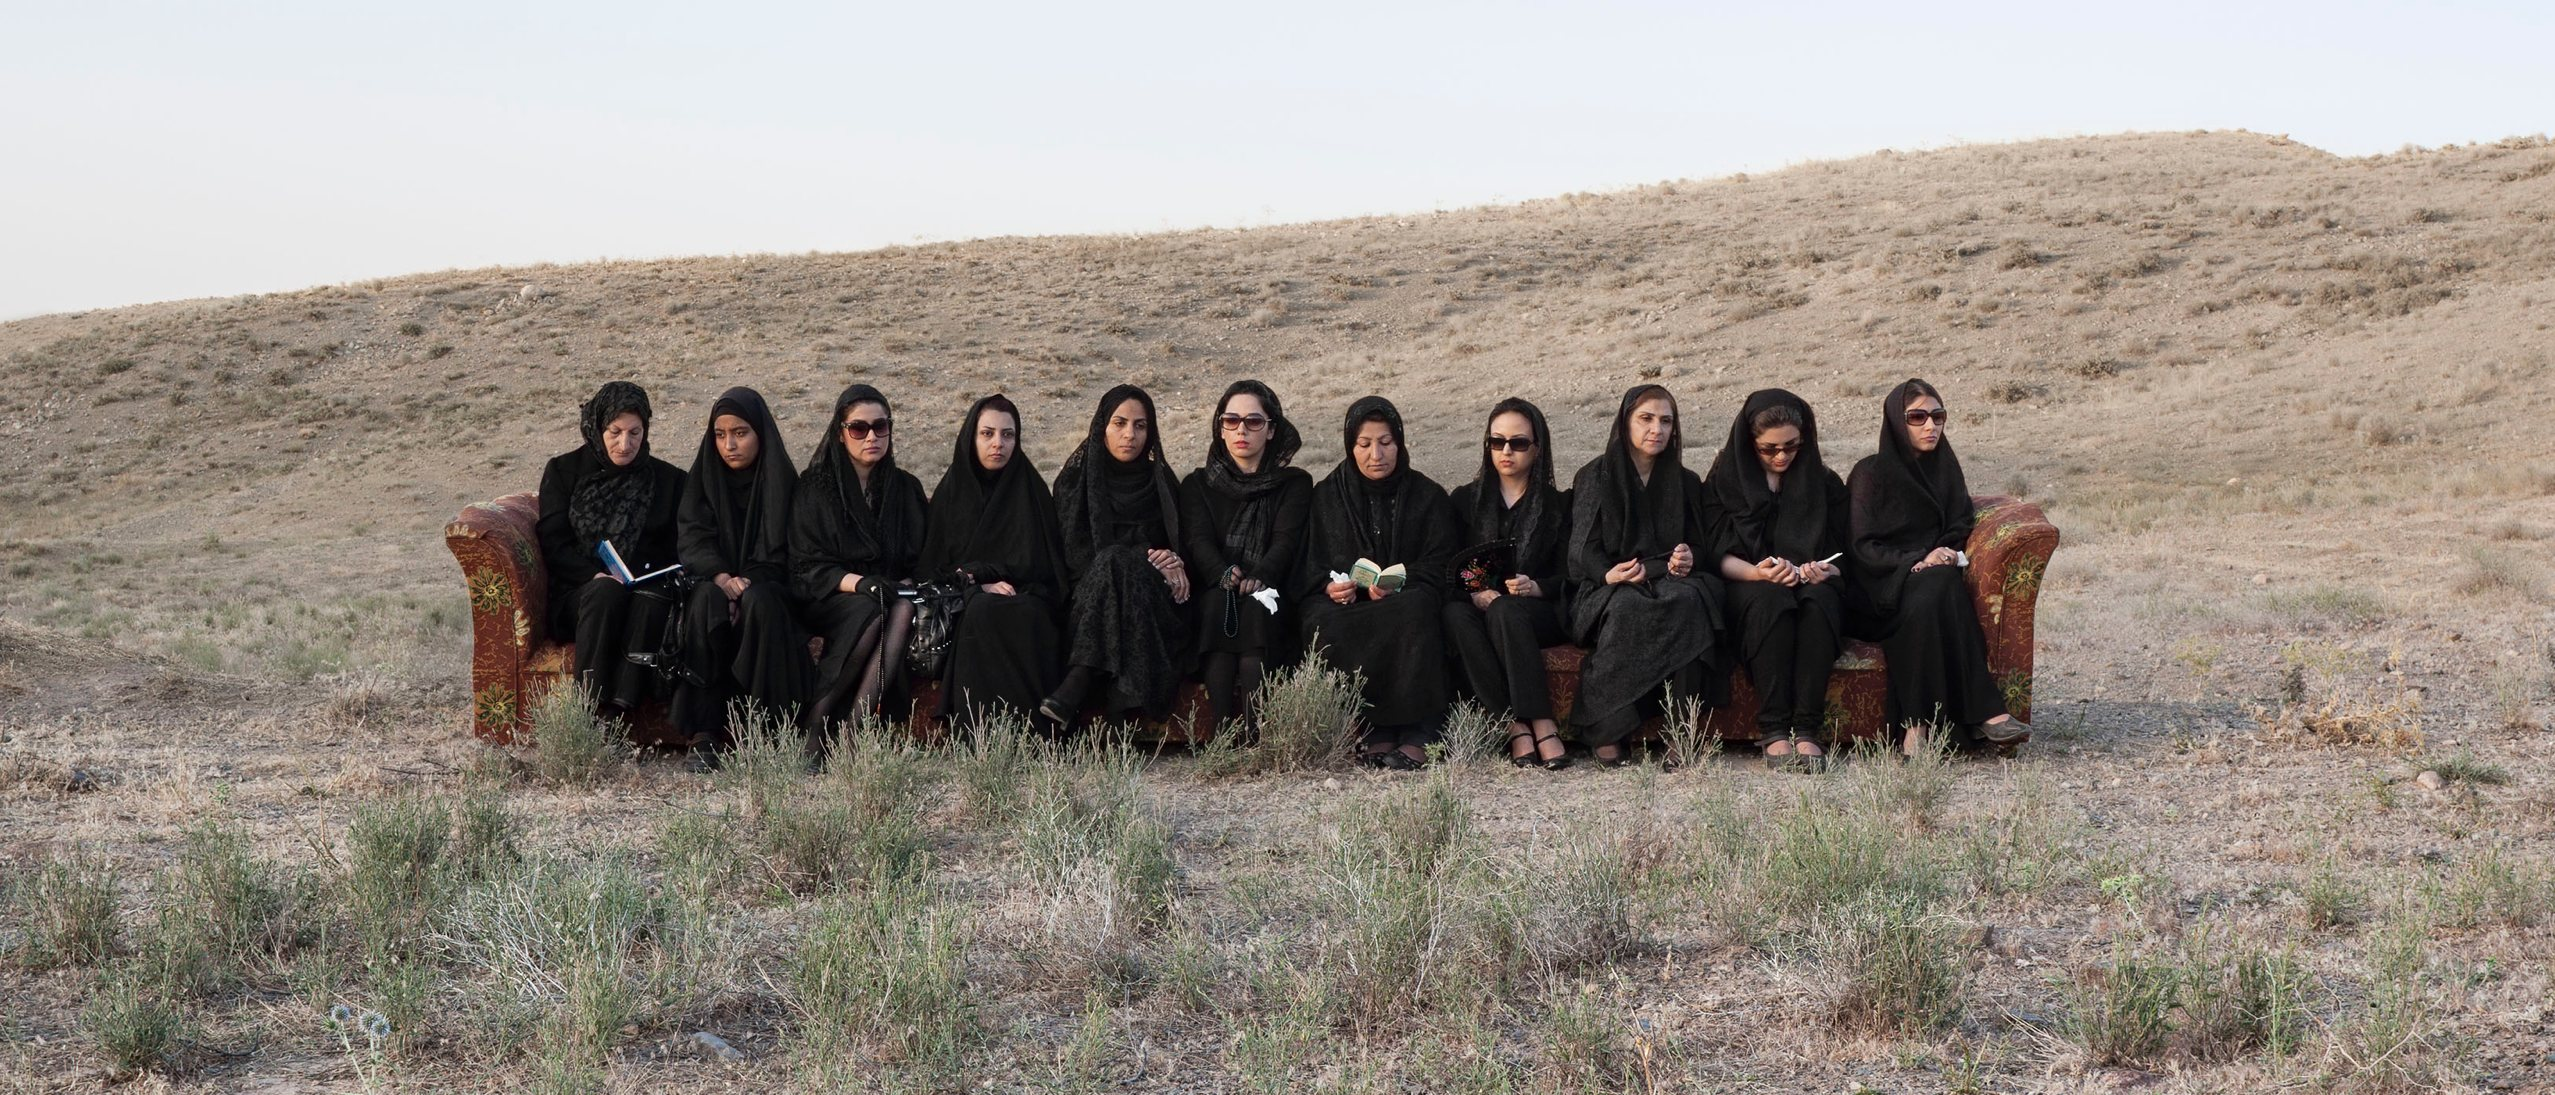 eleven women in all black seated on a long sofa in the middle of an arid field